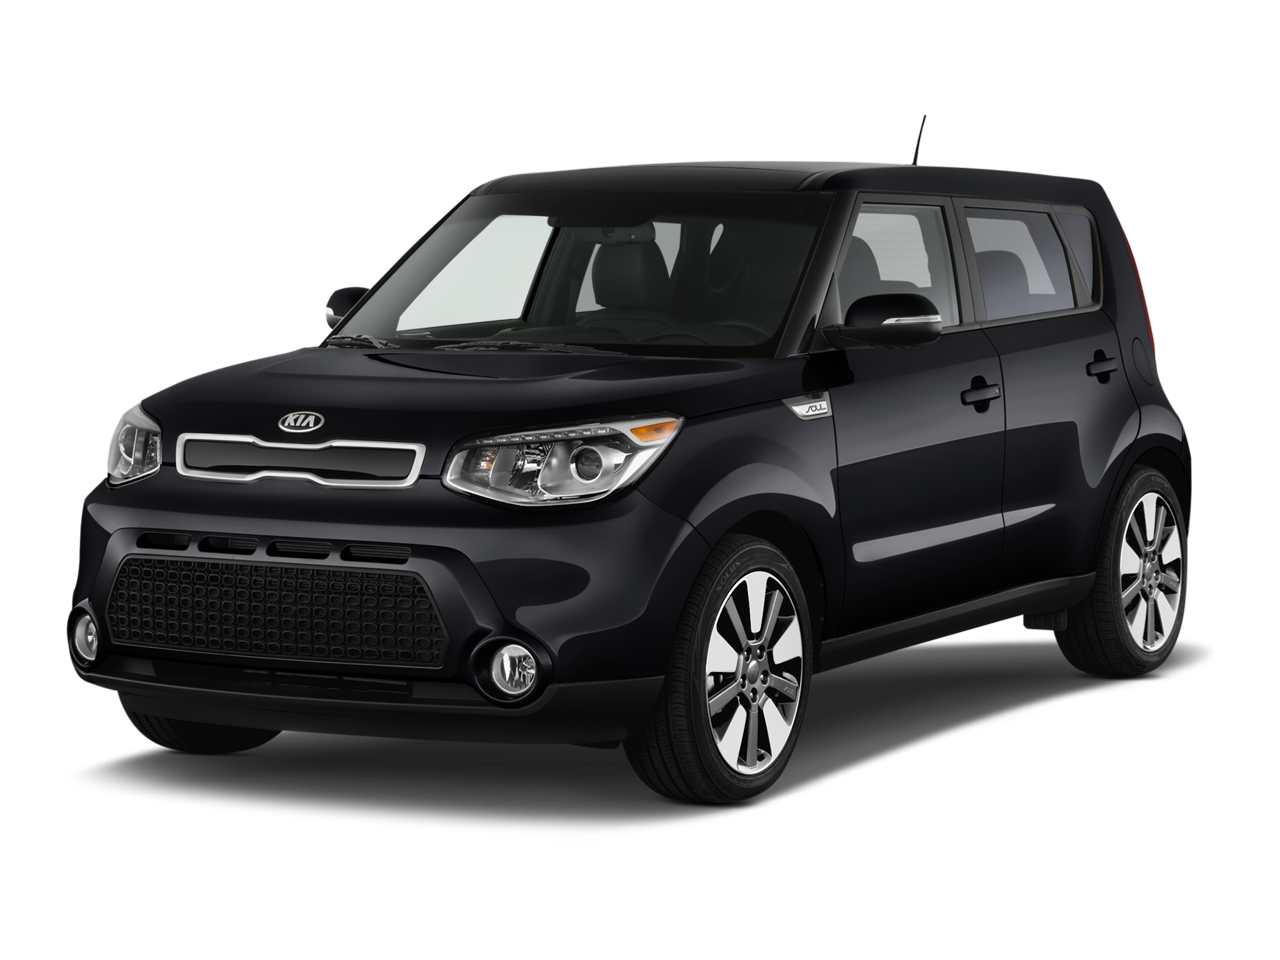 Aloha Kia Airport >> Kia Dealer Incentives - Aloha Kia Airport